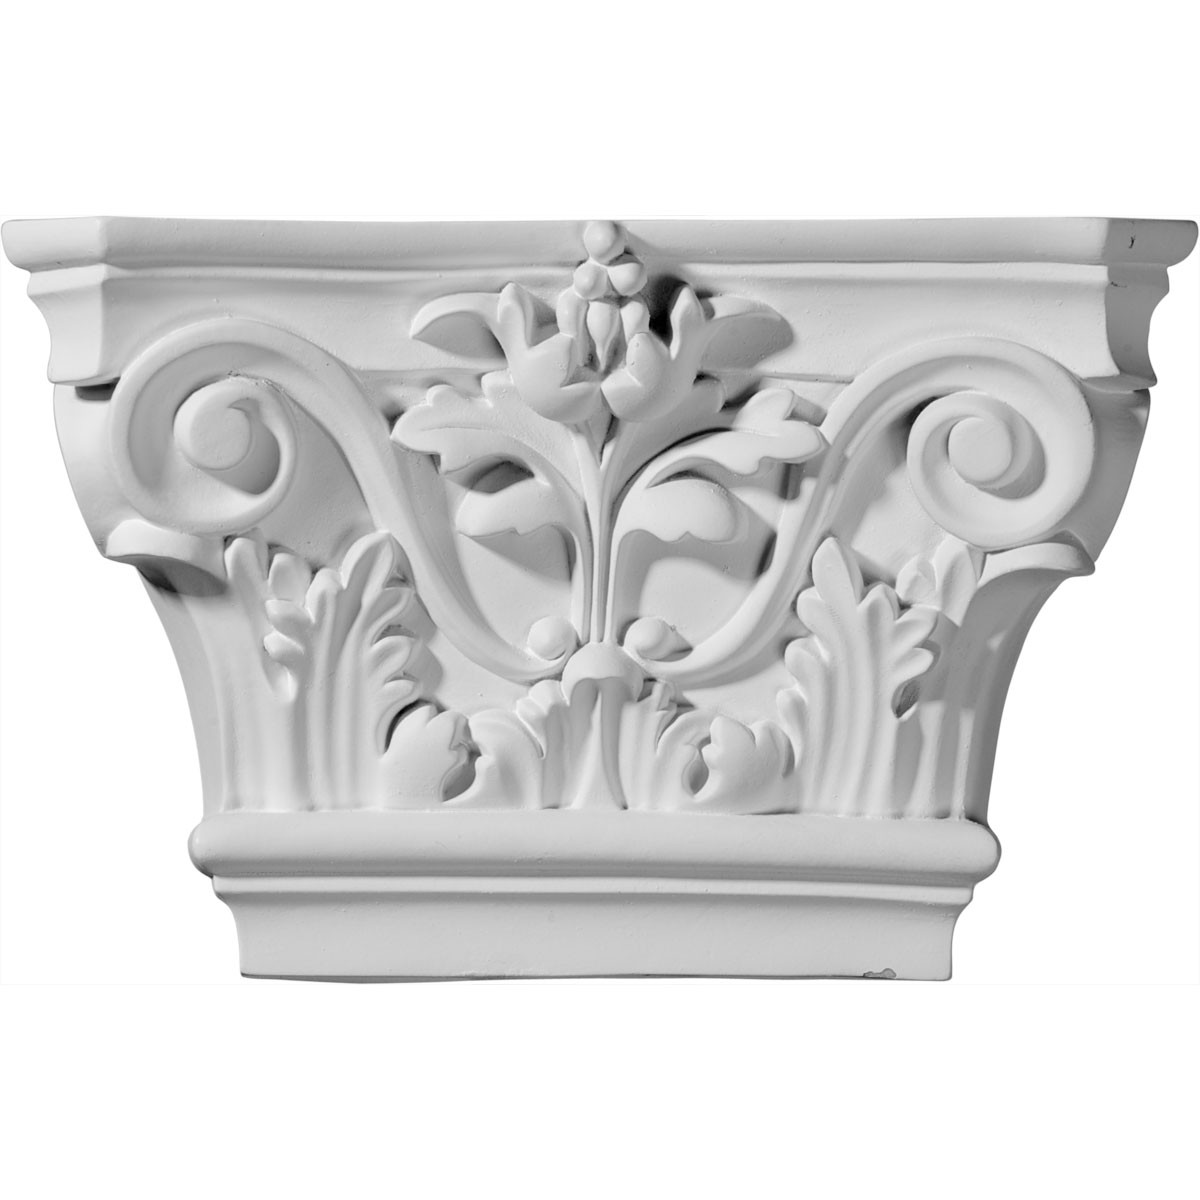 """EM-CAP08X02X05OD - 8 3/8""""W x 2 1/8""""D x 5 1/4""""H Odessa Capital (Fits Pilasters up to 5 1/8""""W x 1/2""""D)"""